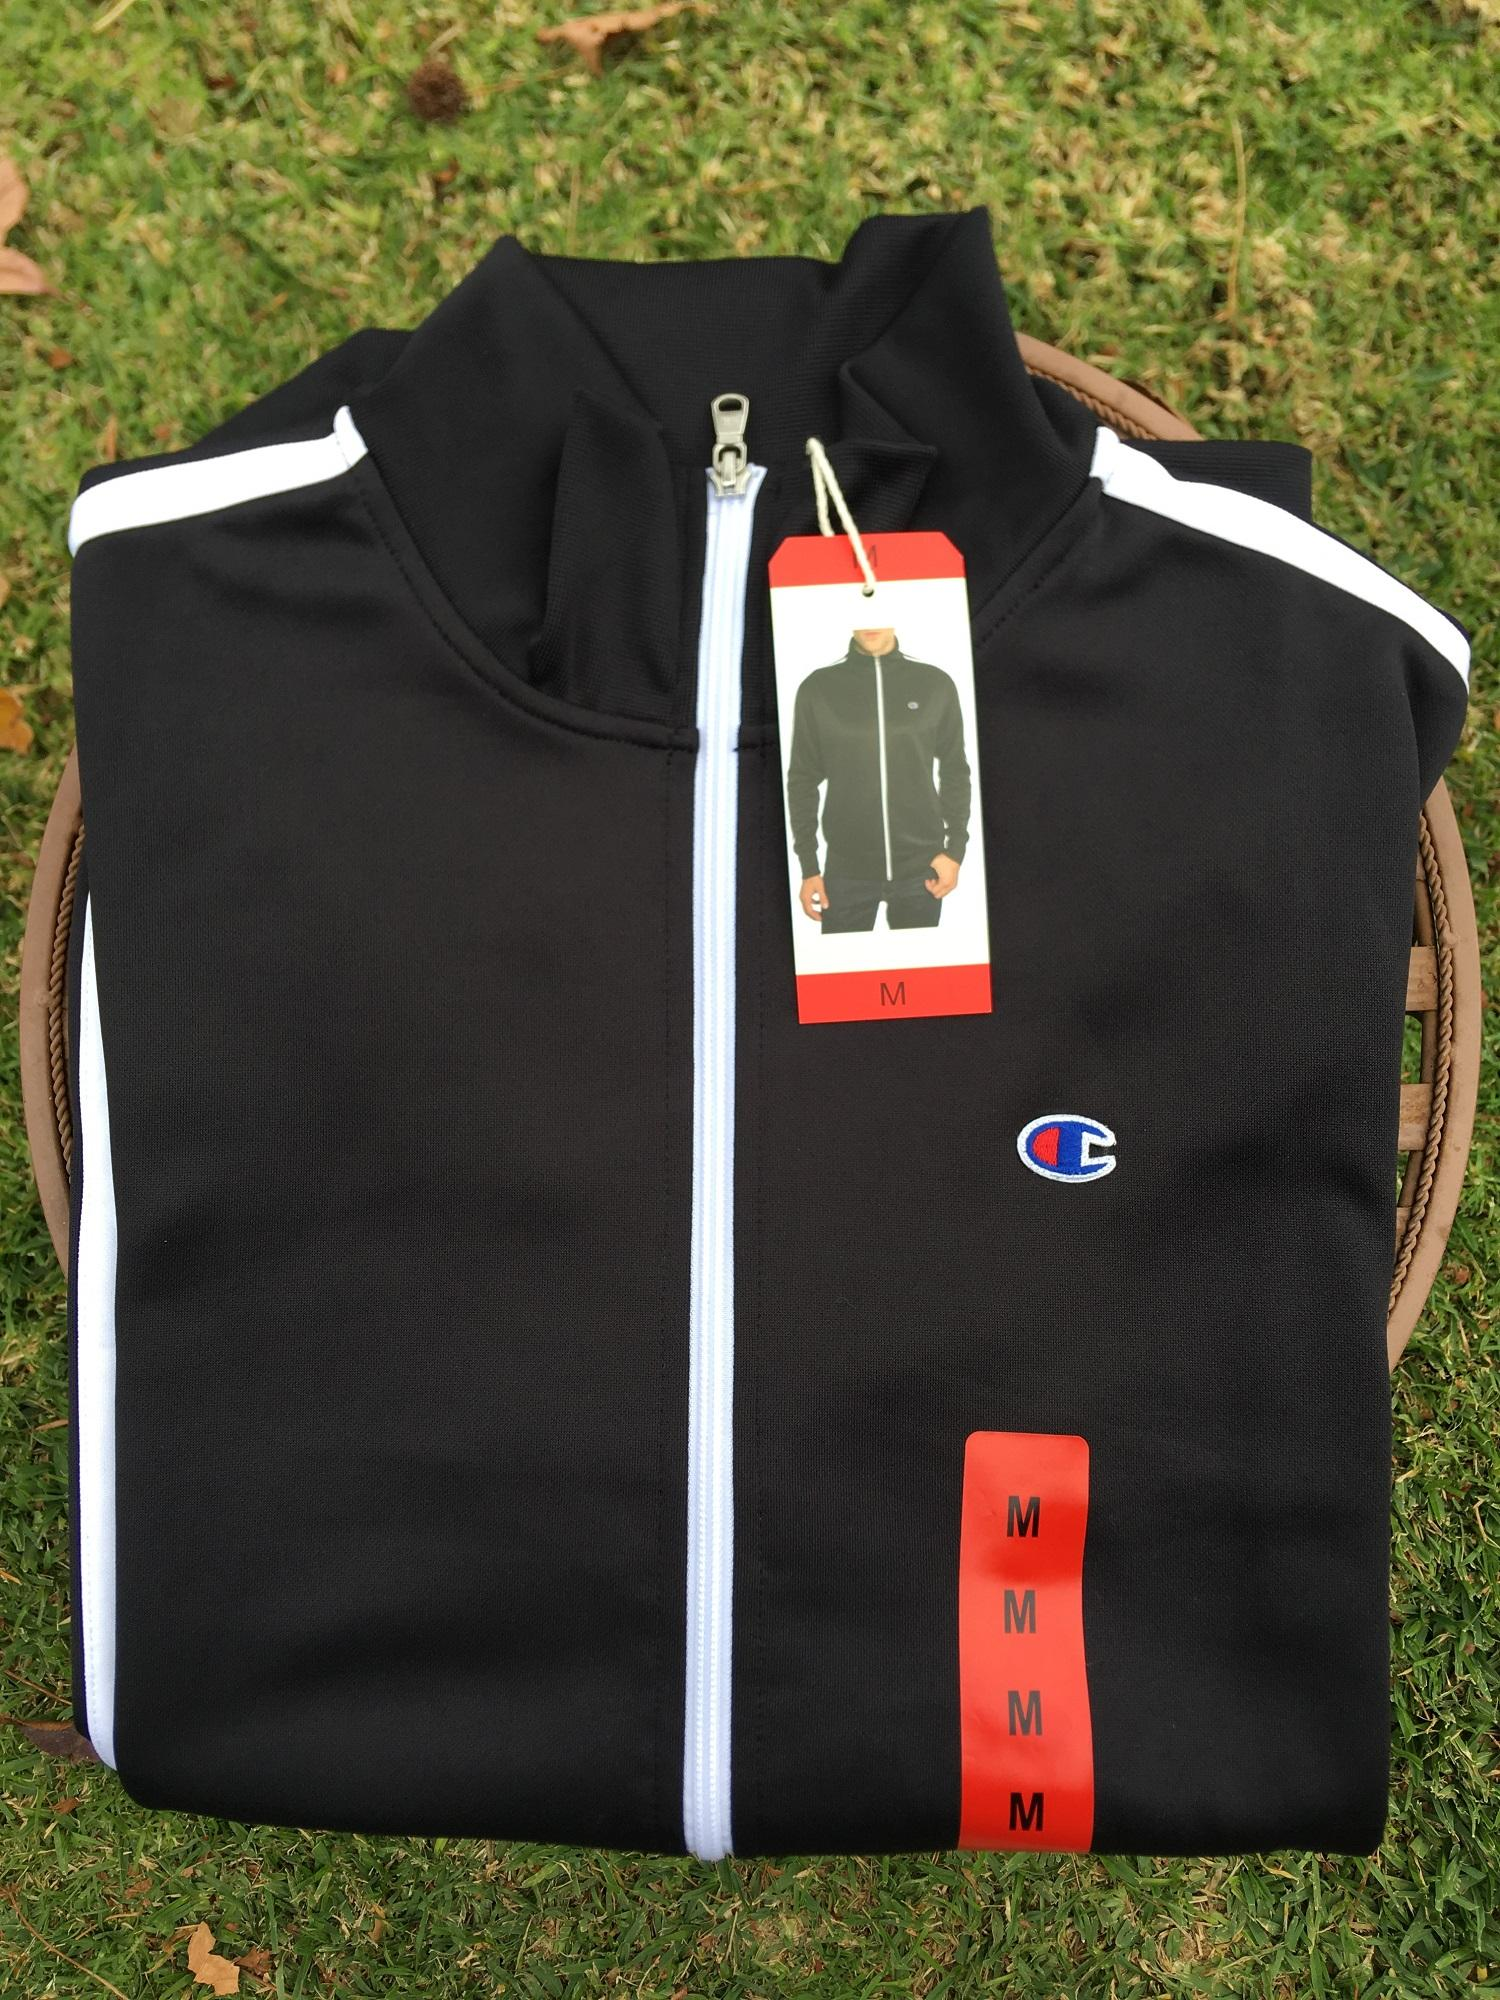 100% Authentic & Brand New Champion Mens Track Jacket-Champion Exclusive Usa Edition By Slmart.